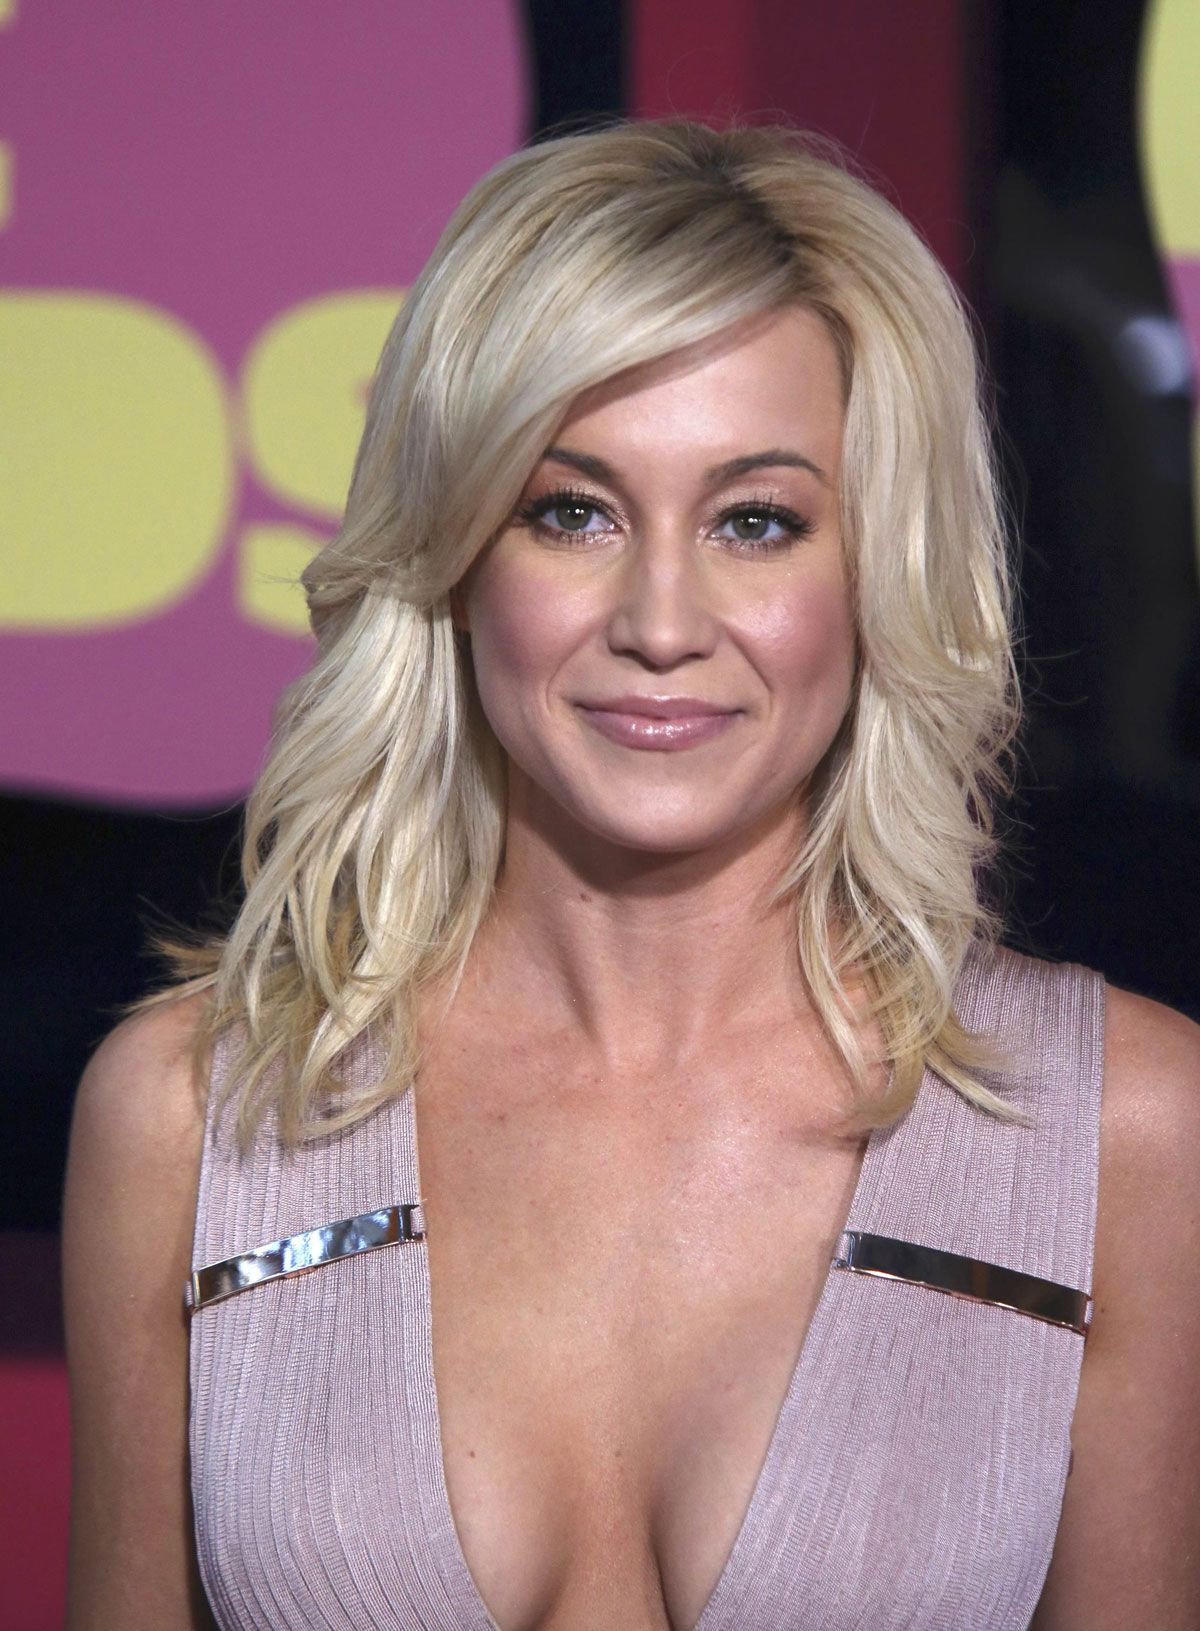 At Kellie Pickler everyone could see that she had a boob job and a ...